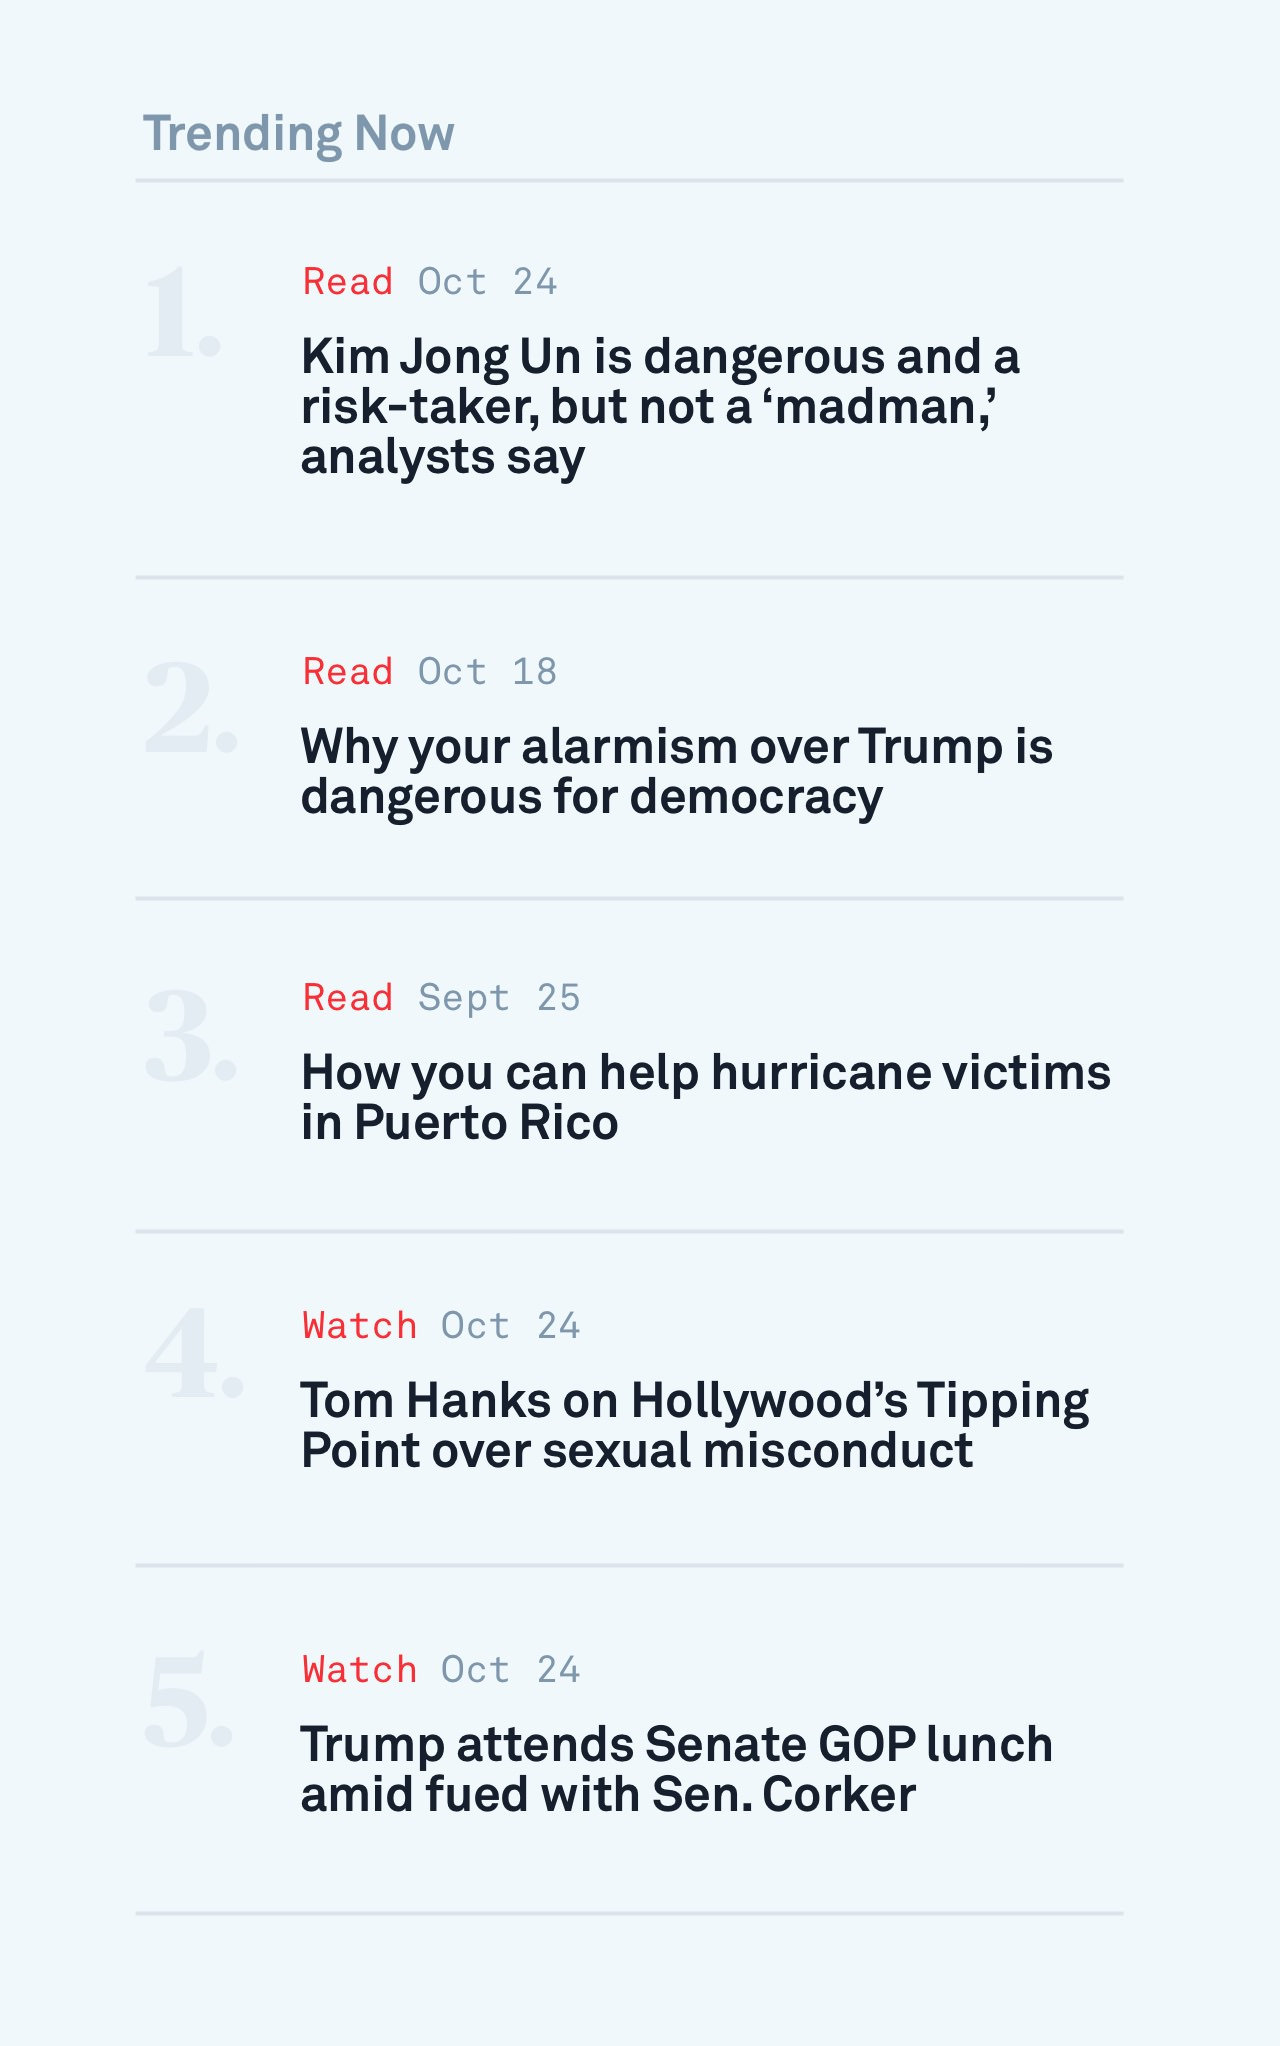 Screenshot of an example trending topics list from the PBS NewsHour site.